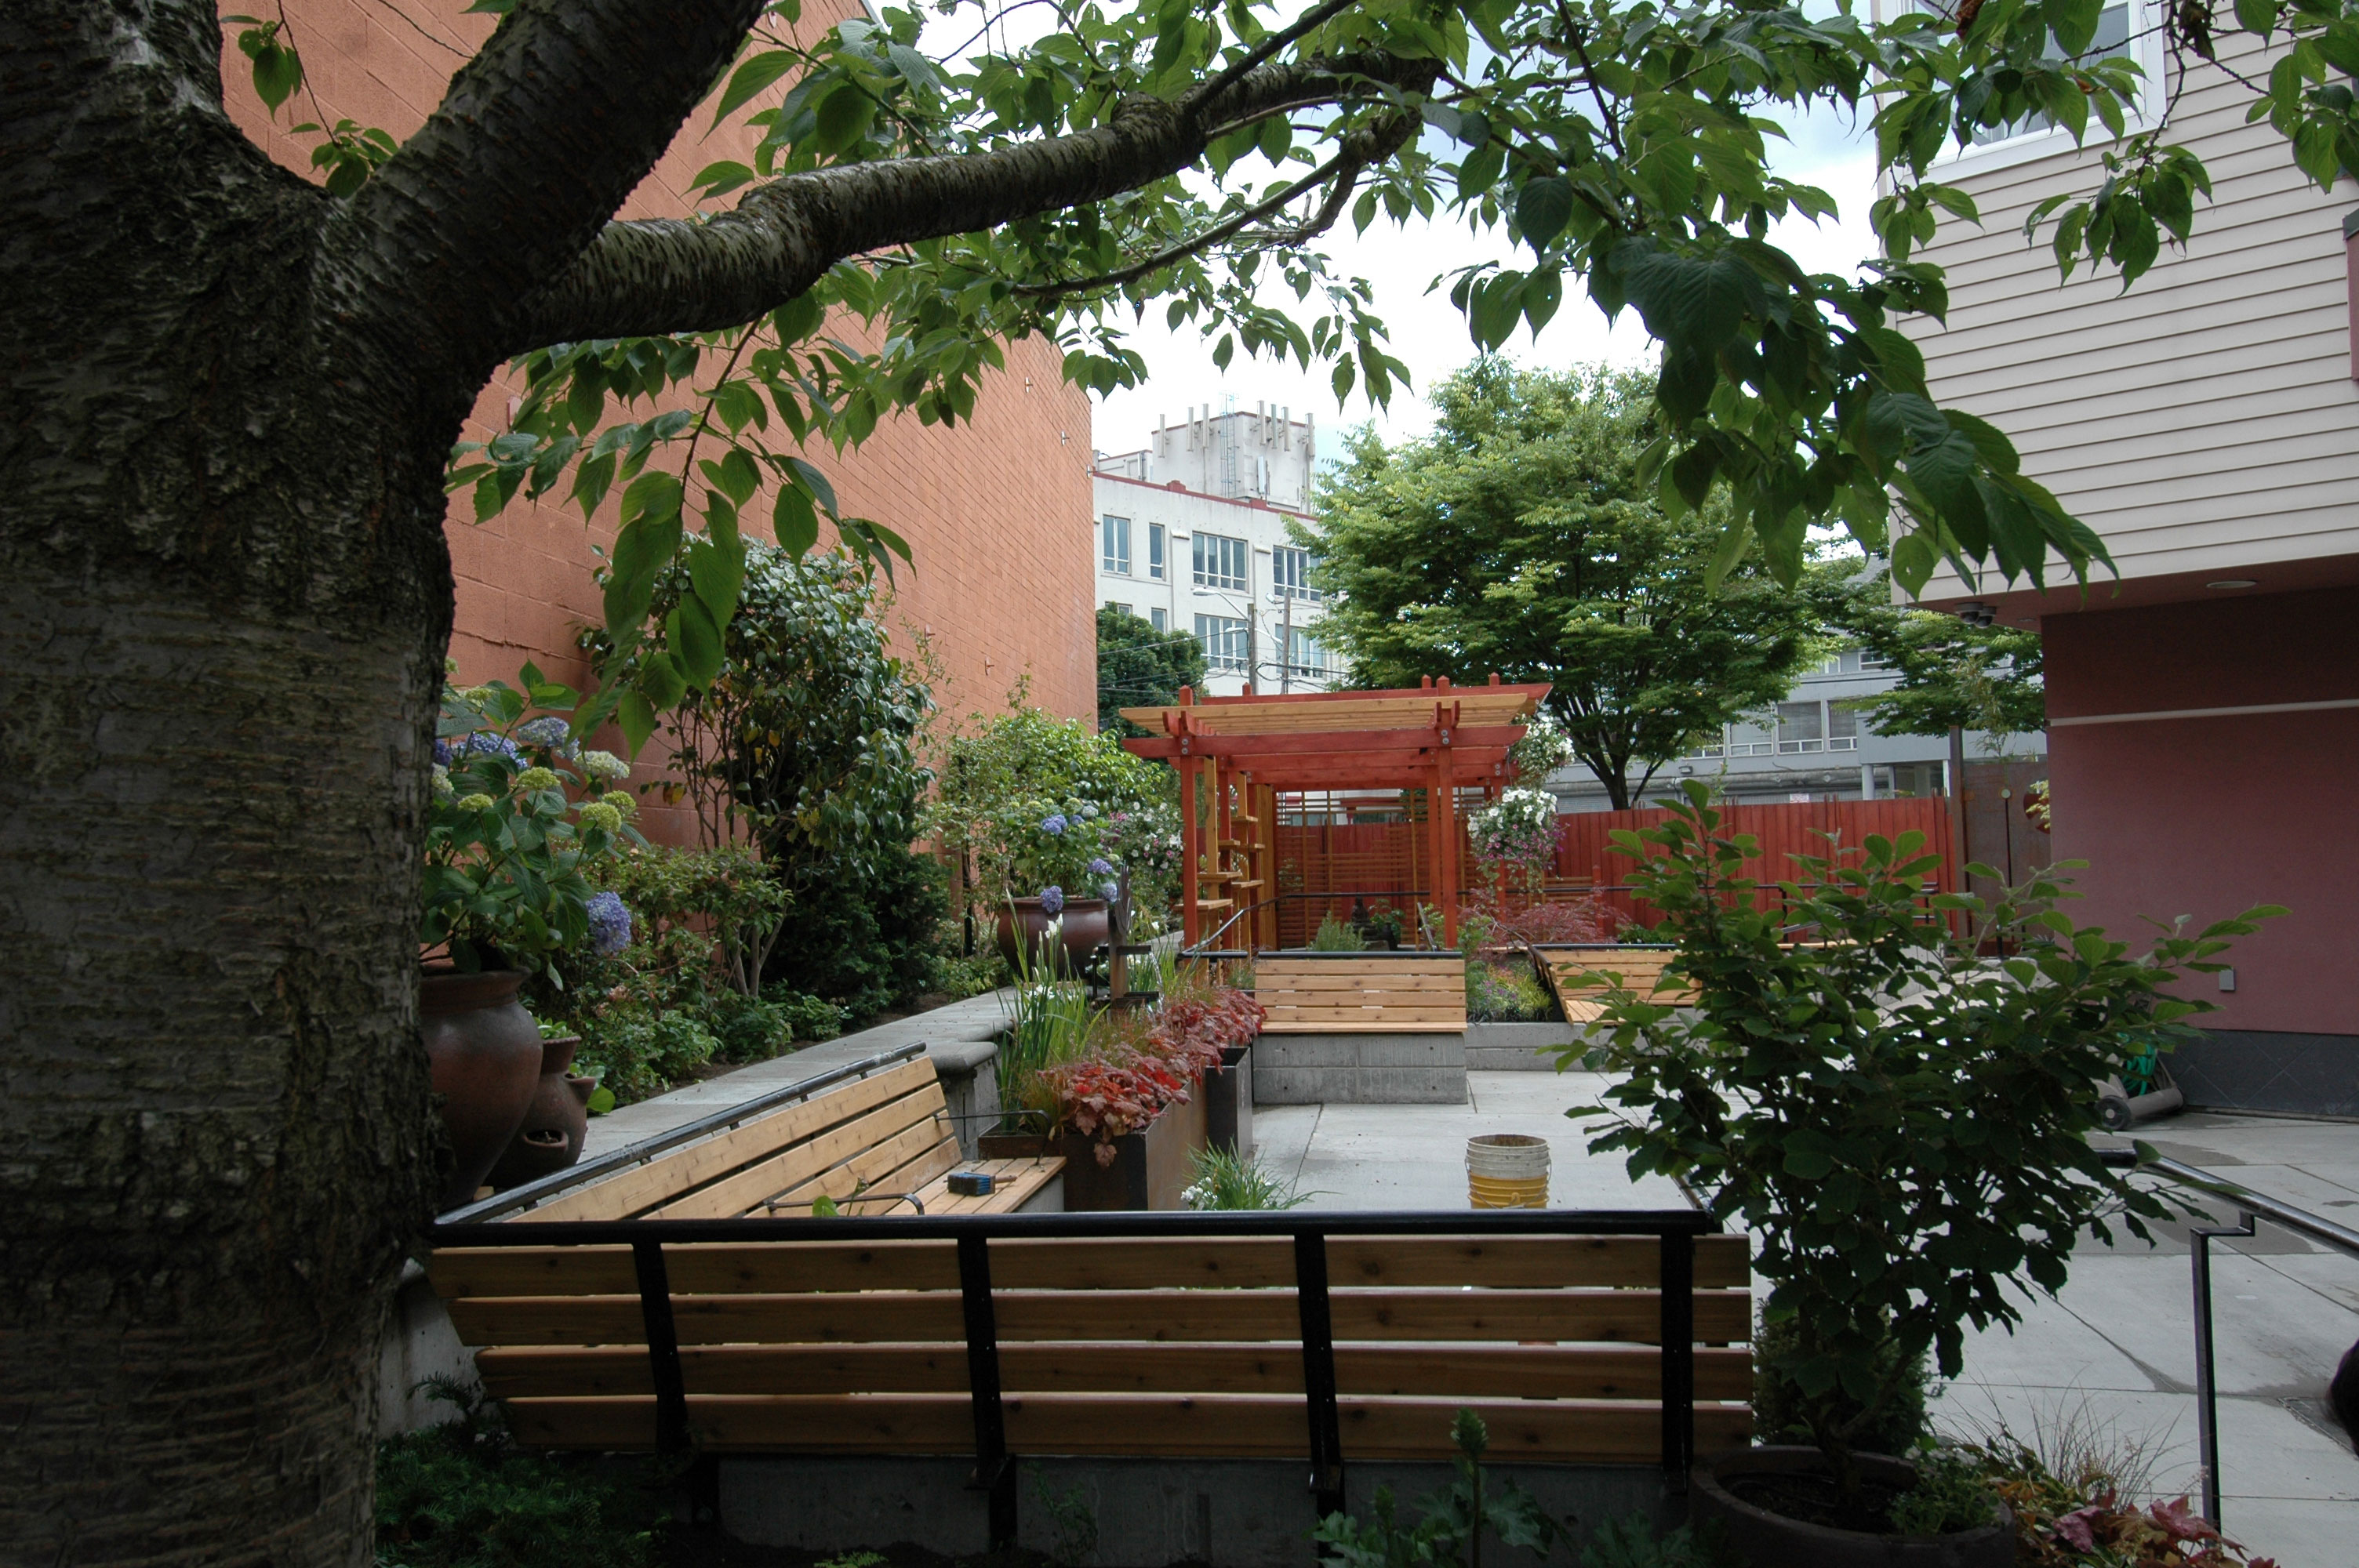 Nikkei Manor, An Assisted Living Community In Seattle, Has A New Garden  Designed